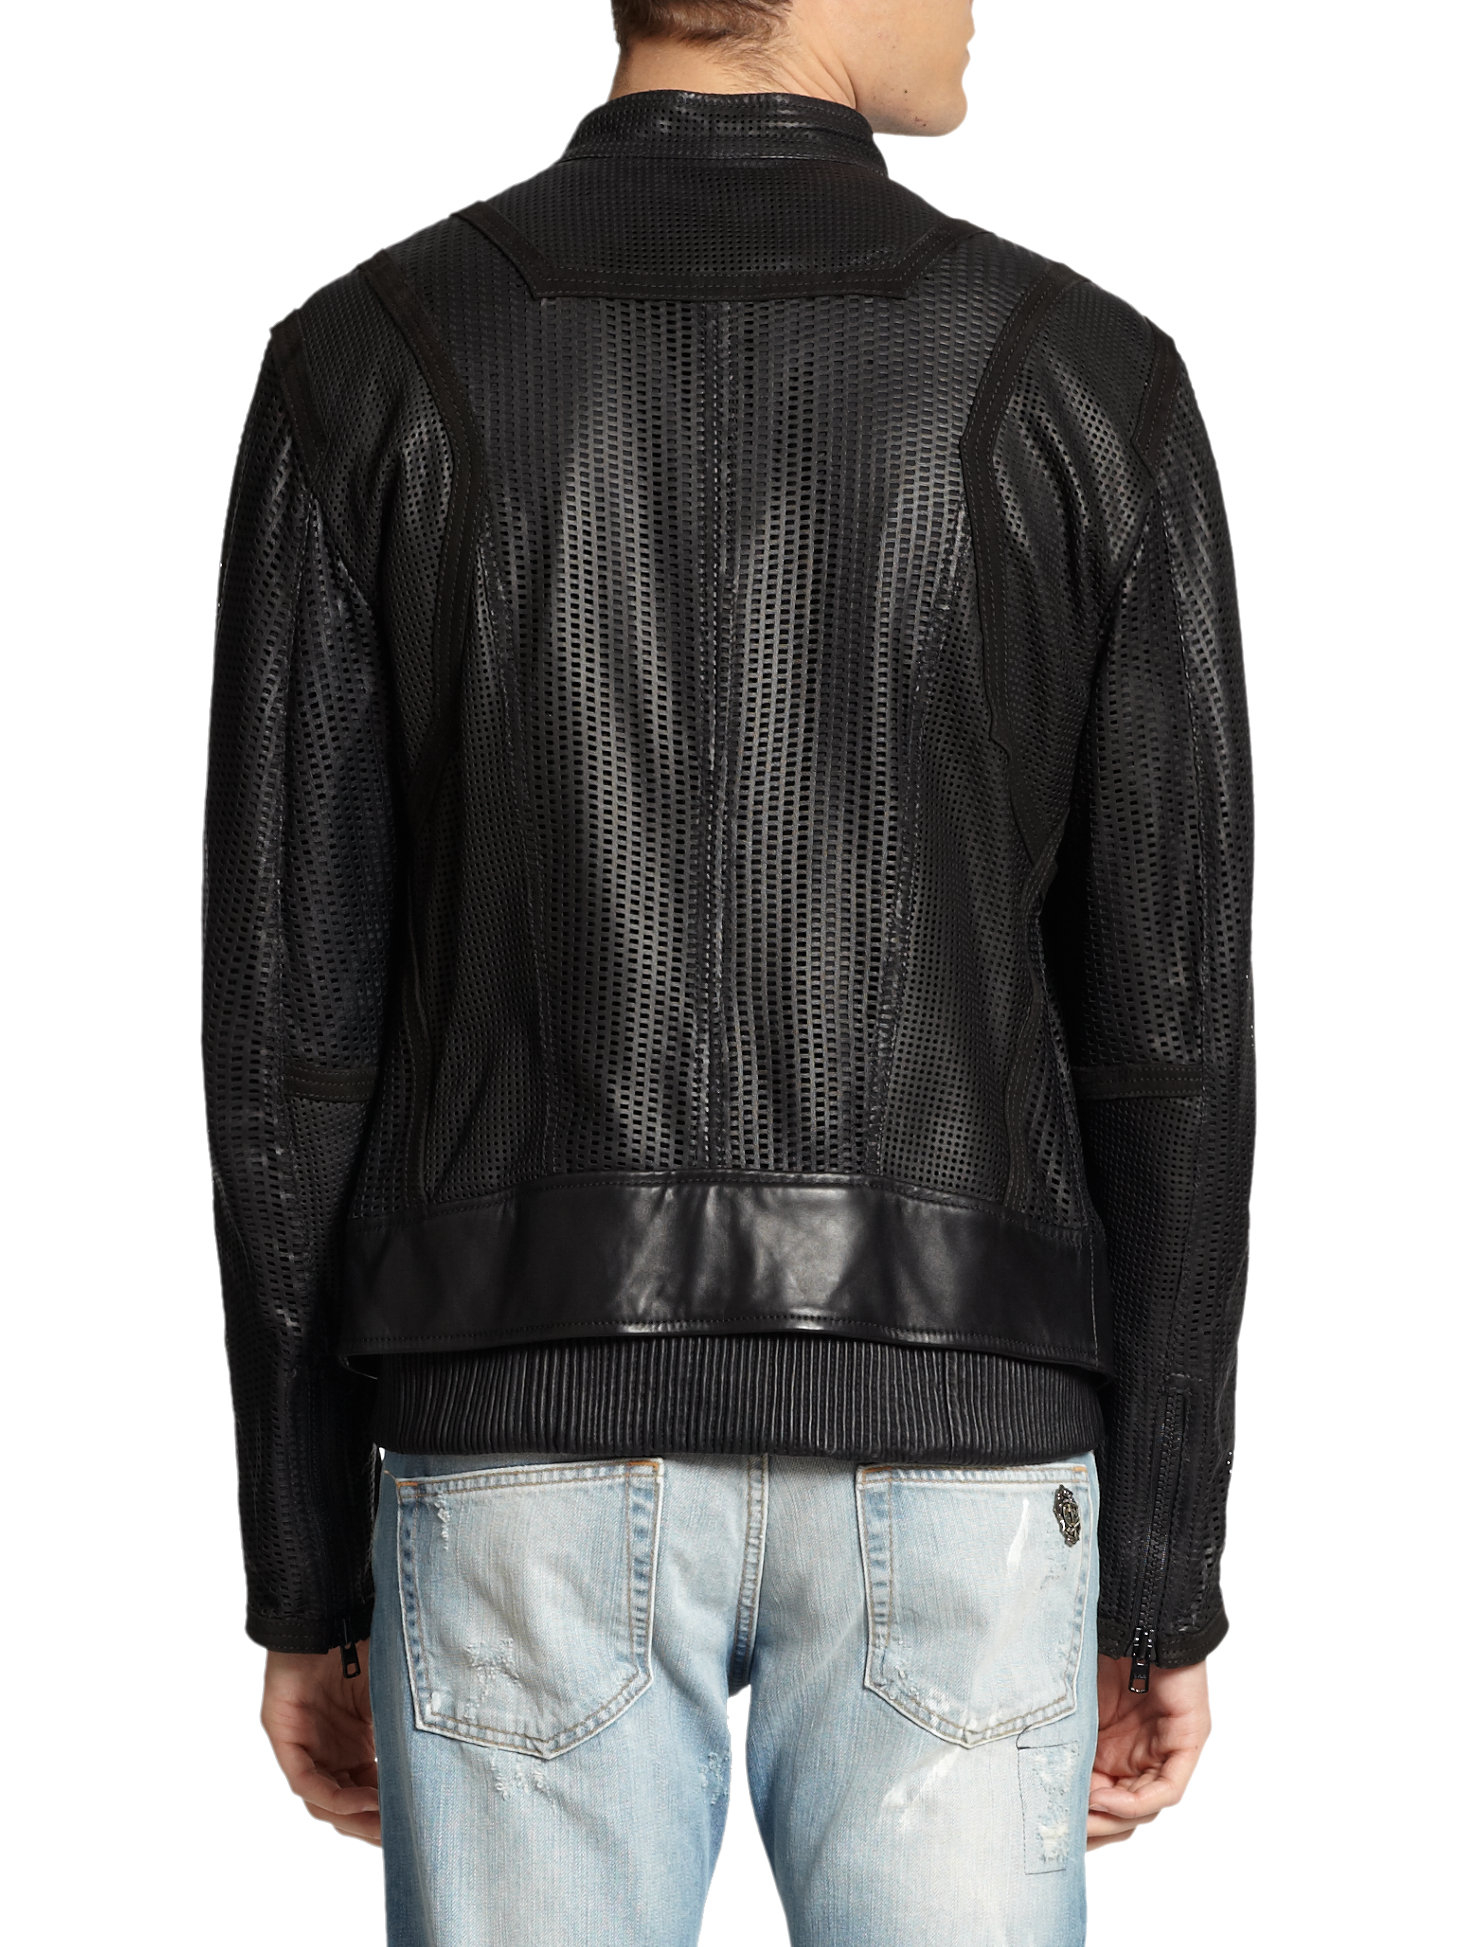 Just Cavalli Perforated Leather Jacket In Black For Men Lyst